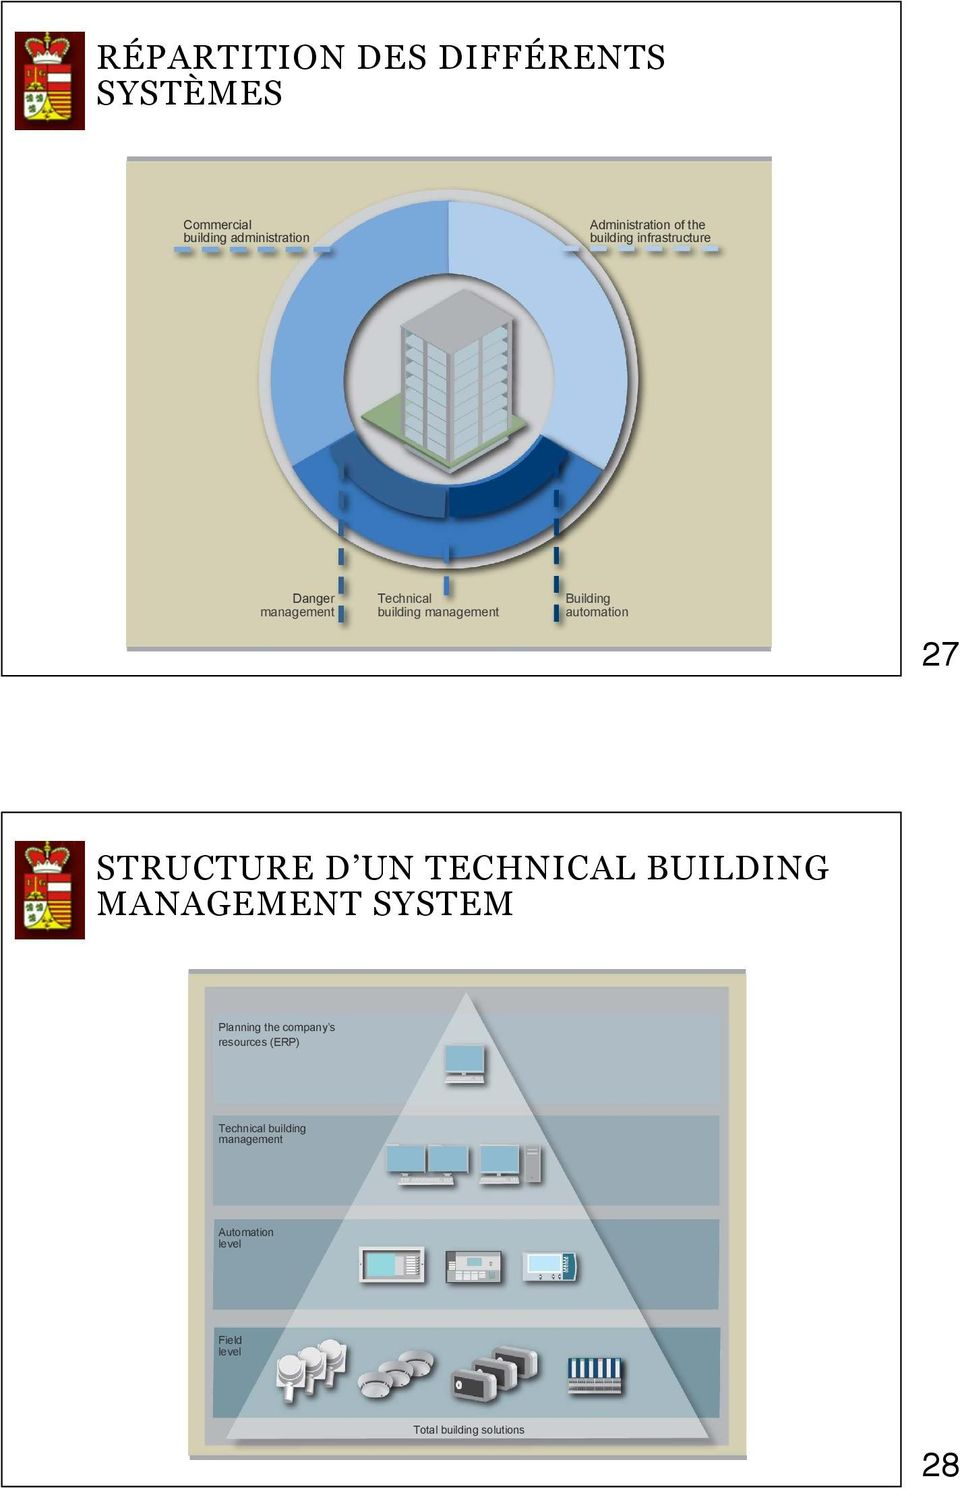 building management and will then focus on safety engineering. In the sense of a data concentration, building management can be represented as a hierarchical pyramid.